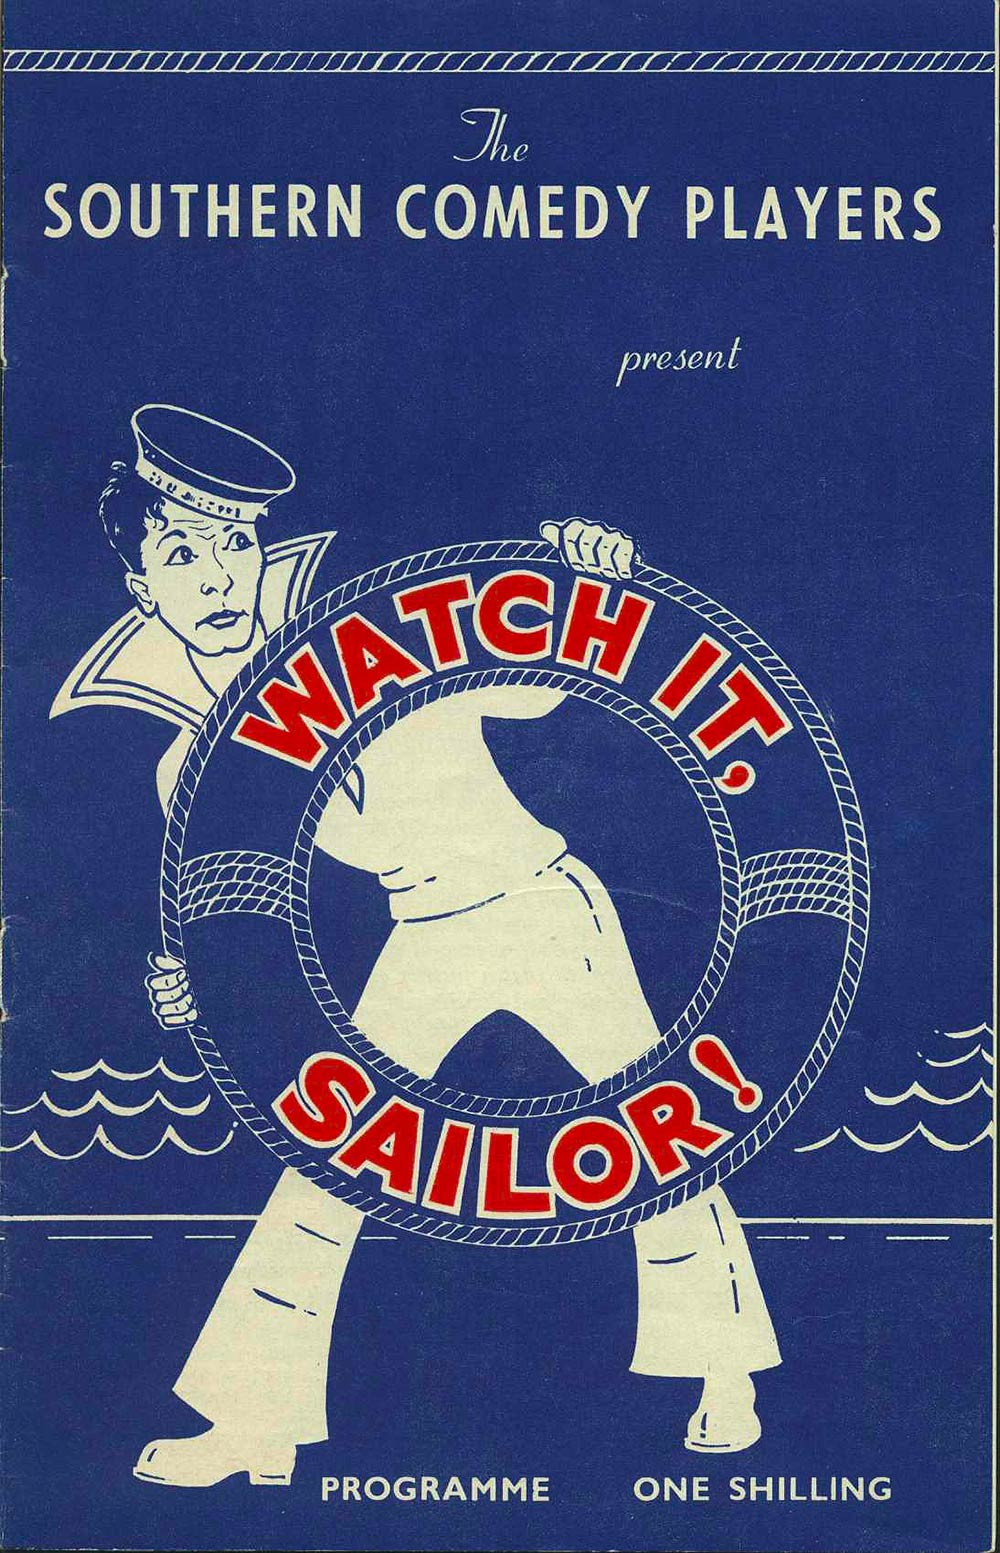 <em>Watch it sailor</em>. Philip King and Falkland Cary. (Southern Comedy Players). His Majesty's Theatre, Dunedin, Jan. 27-31, 1962.